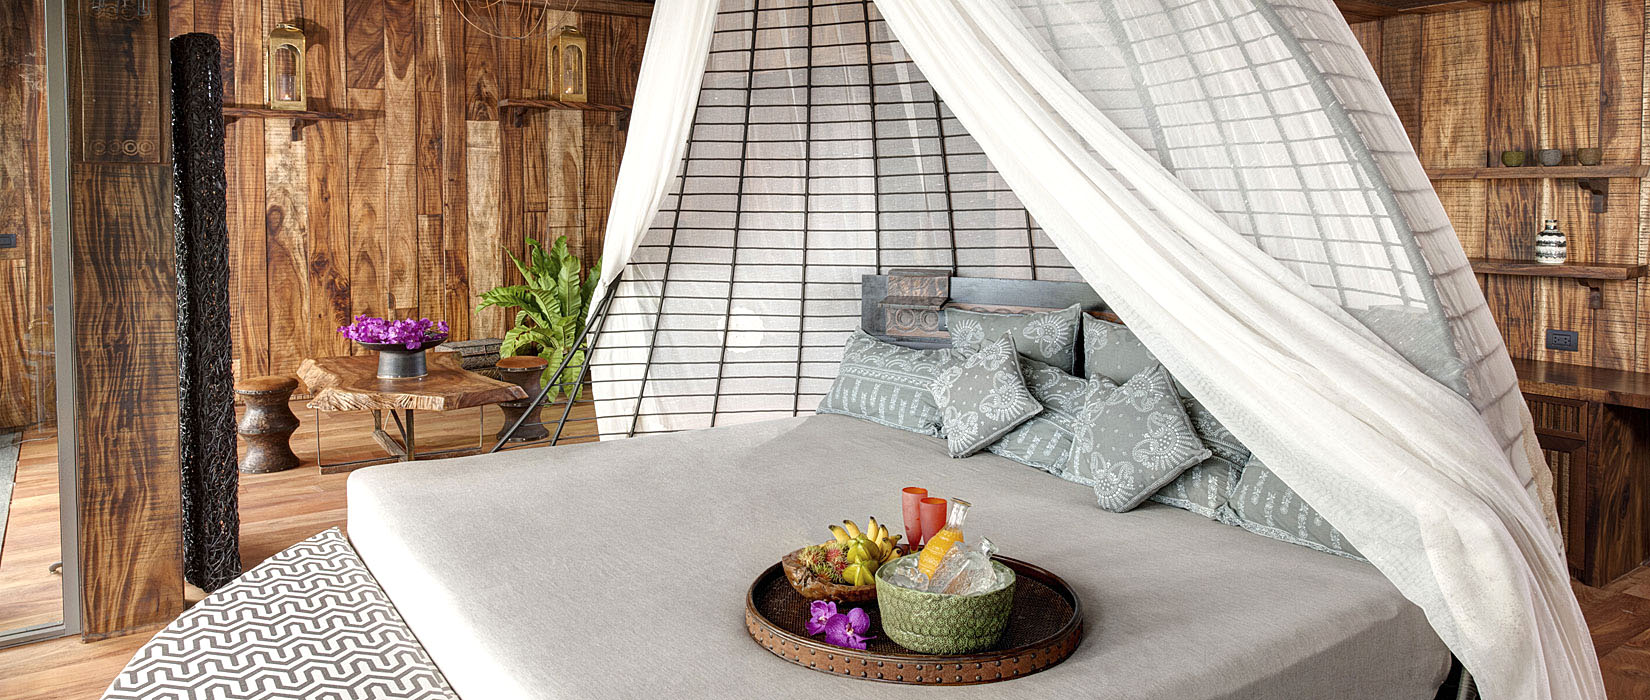 Birds Nest Bedroom at Keemala Luxury resort in Phuket, Thailand